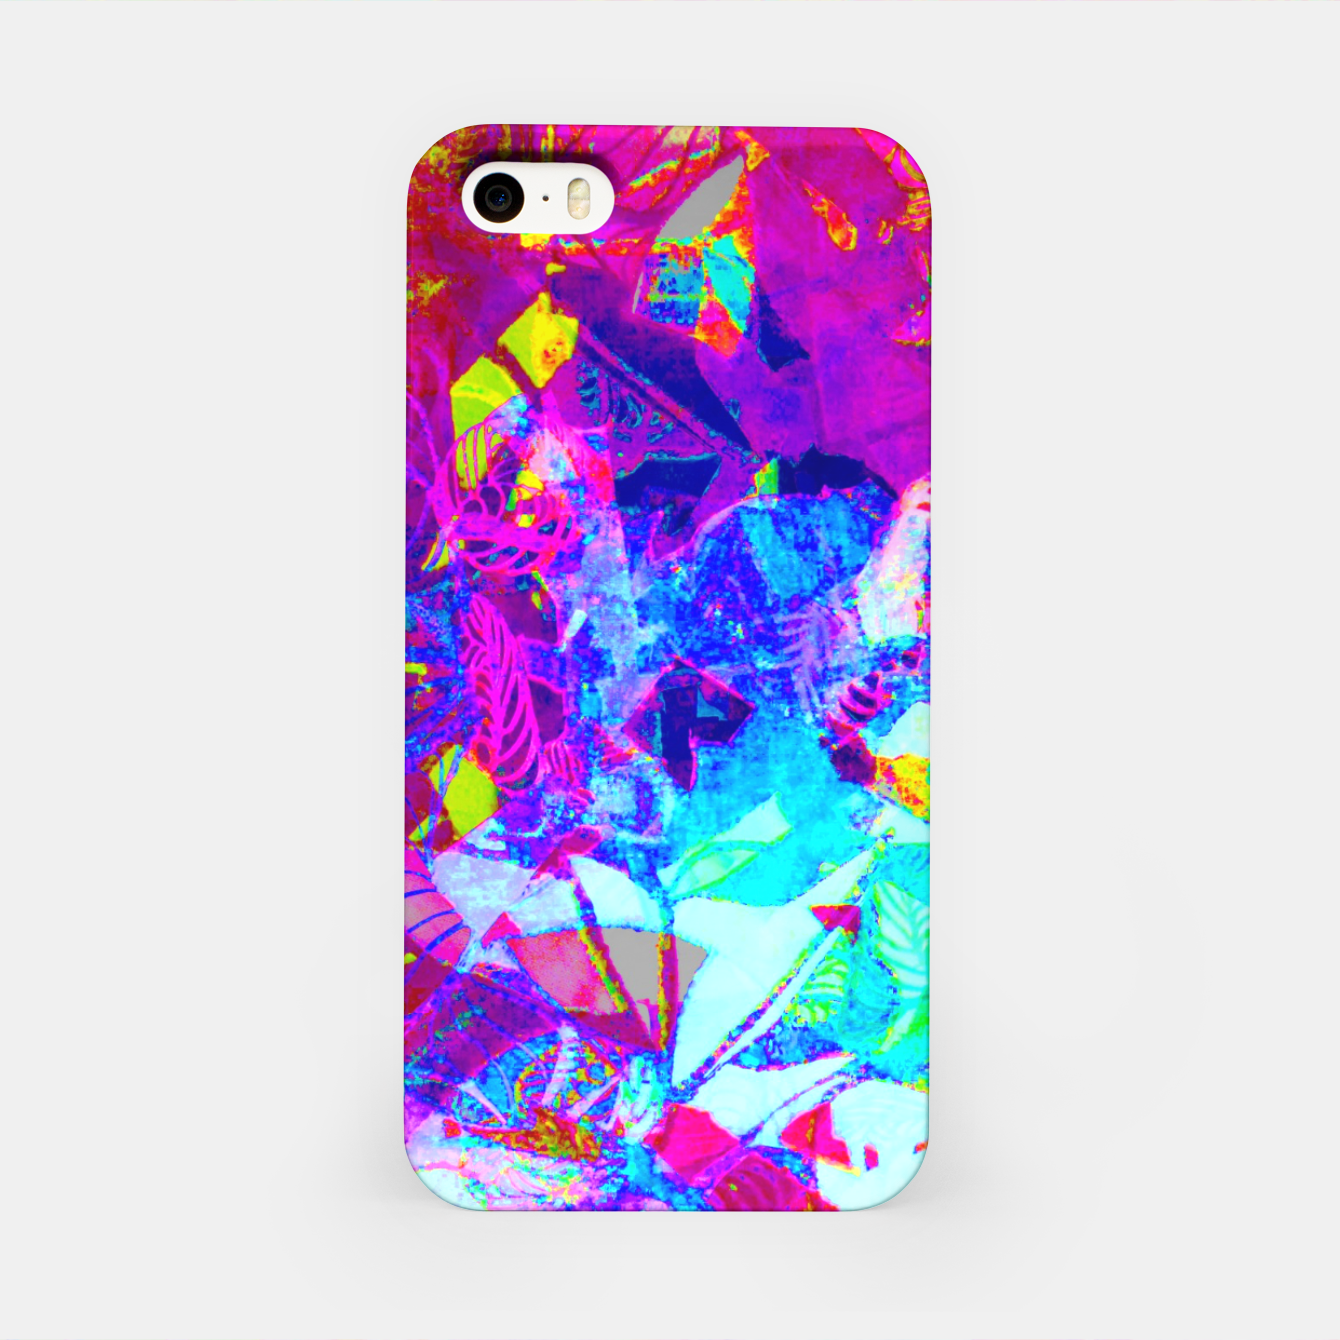 Image of sotm005 iPhone Case - Live Heroes